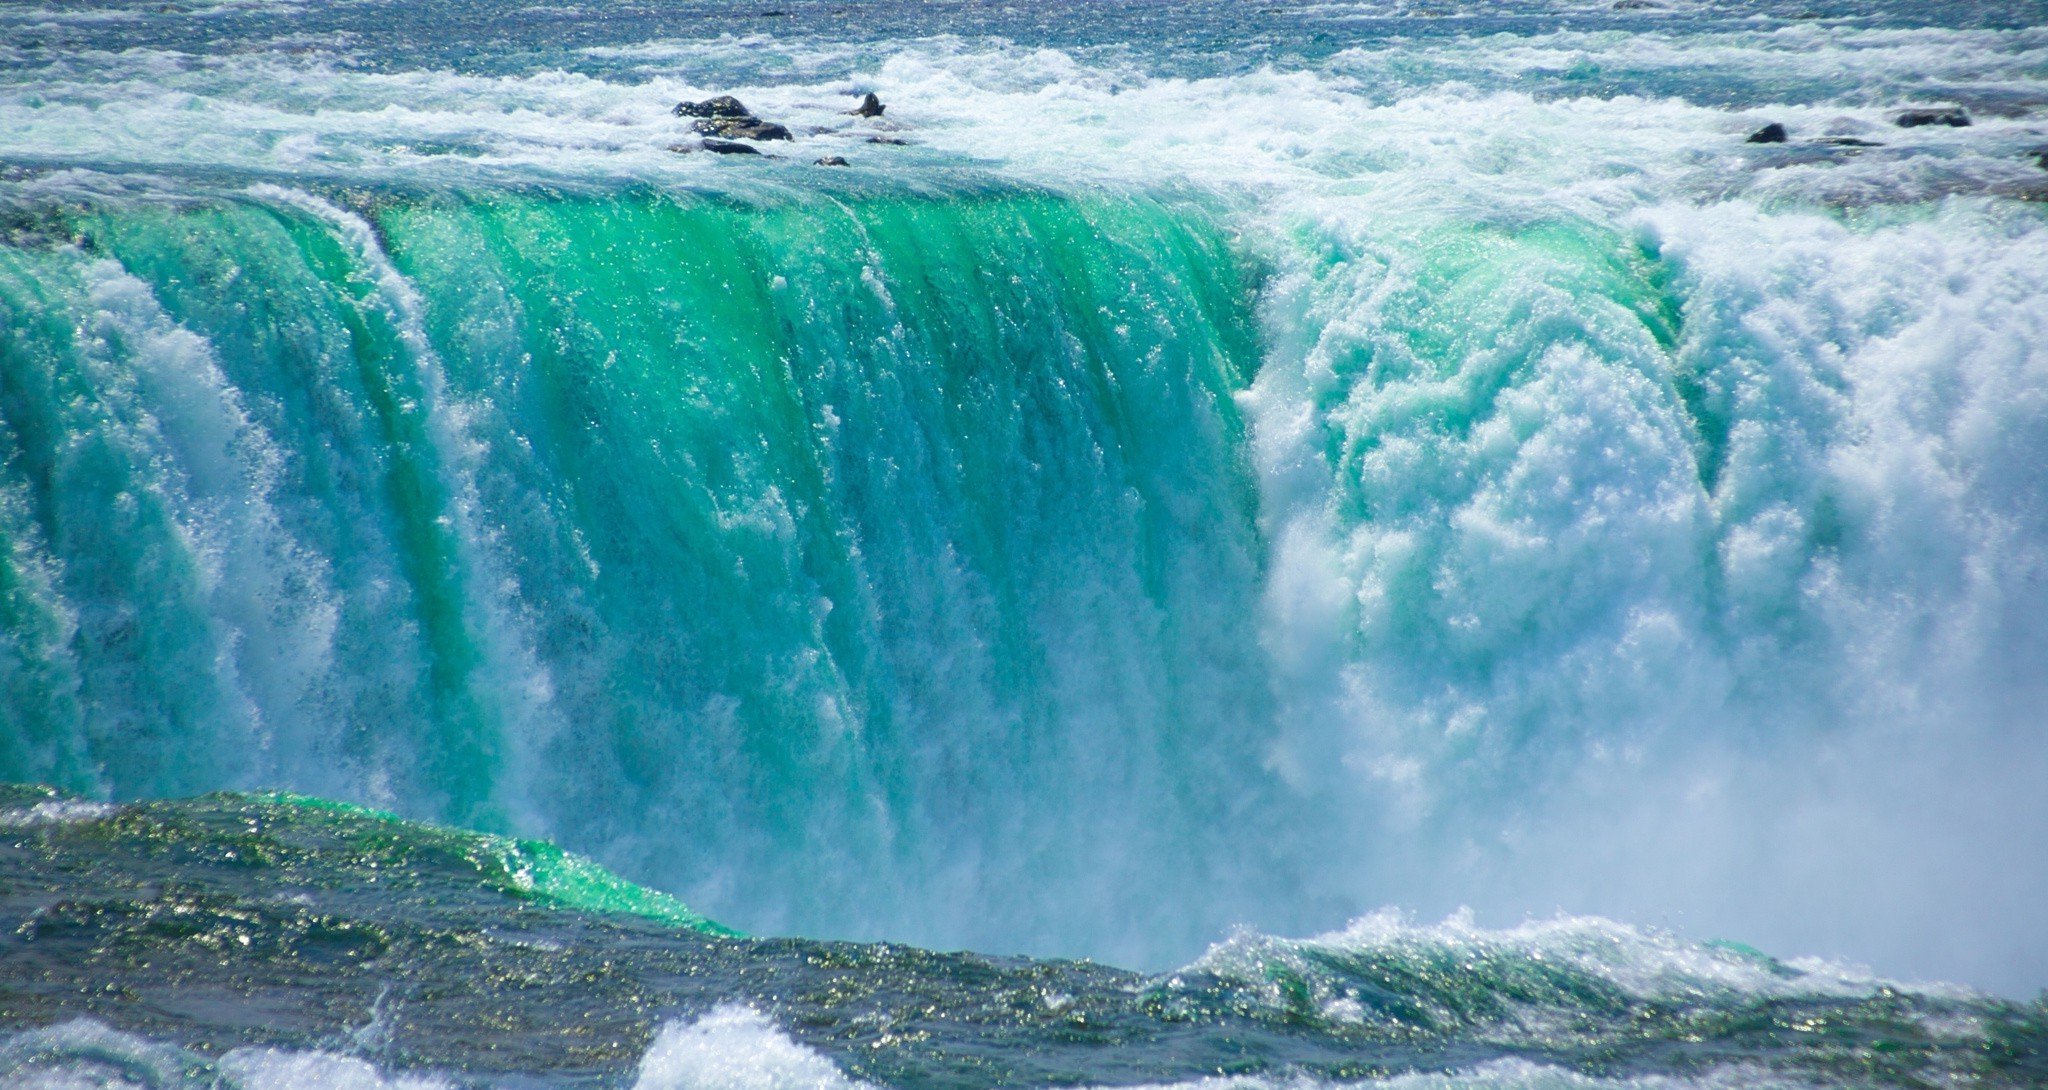 Cars Movie Hd Wallpapers 1080p Water Rapids Waterfall Canada Green White Nature